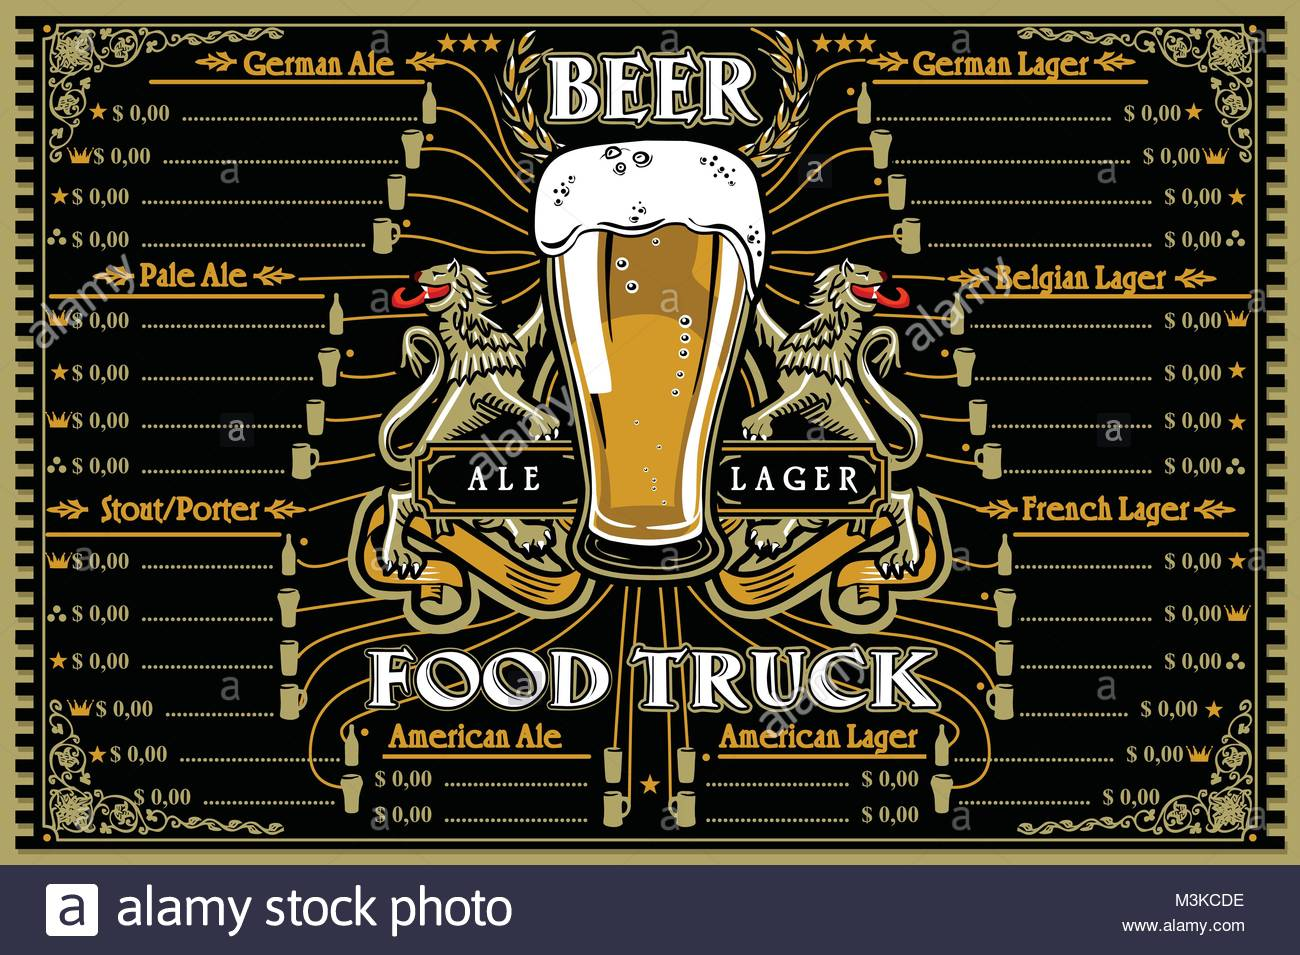 Beer Food Truck Menu With Logo Hipster Advertise Layout With German